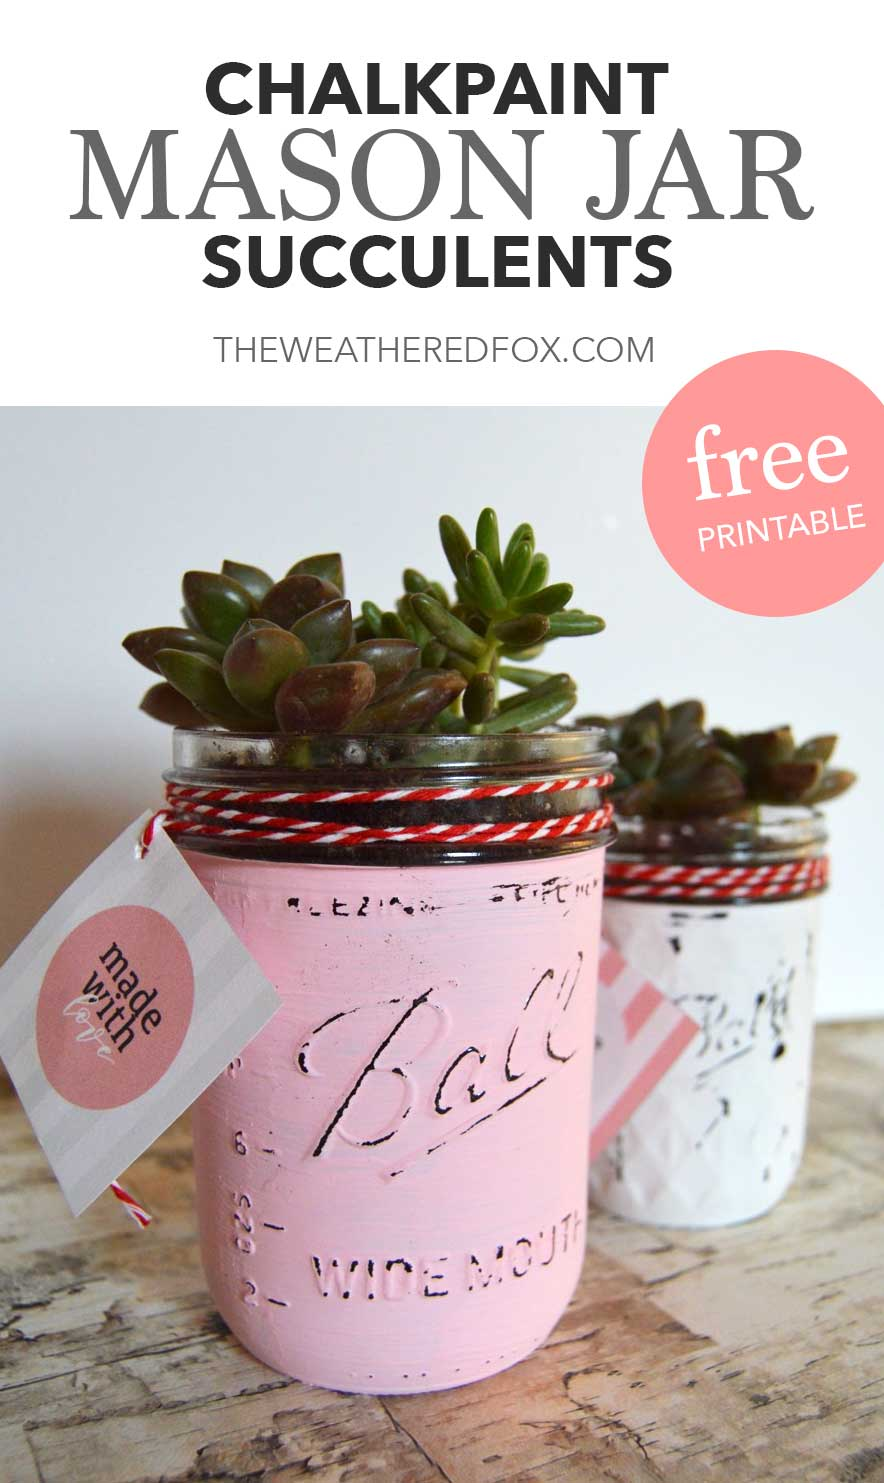 picture about Head in a Jar Printable named Chalkpaint Mason Jar Succulents with Printable - The